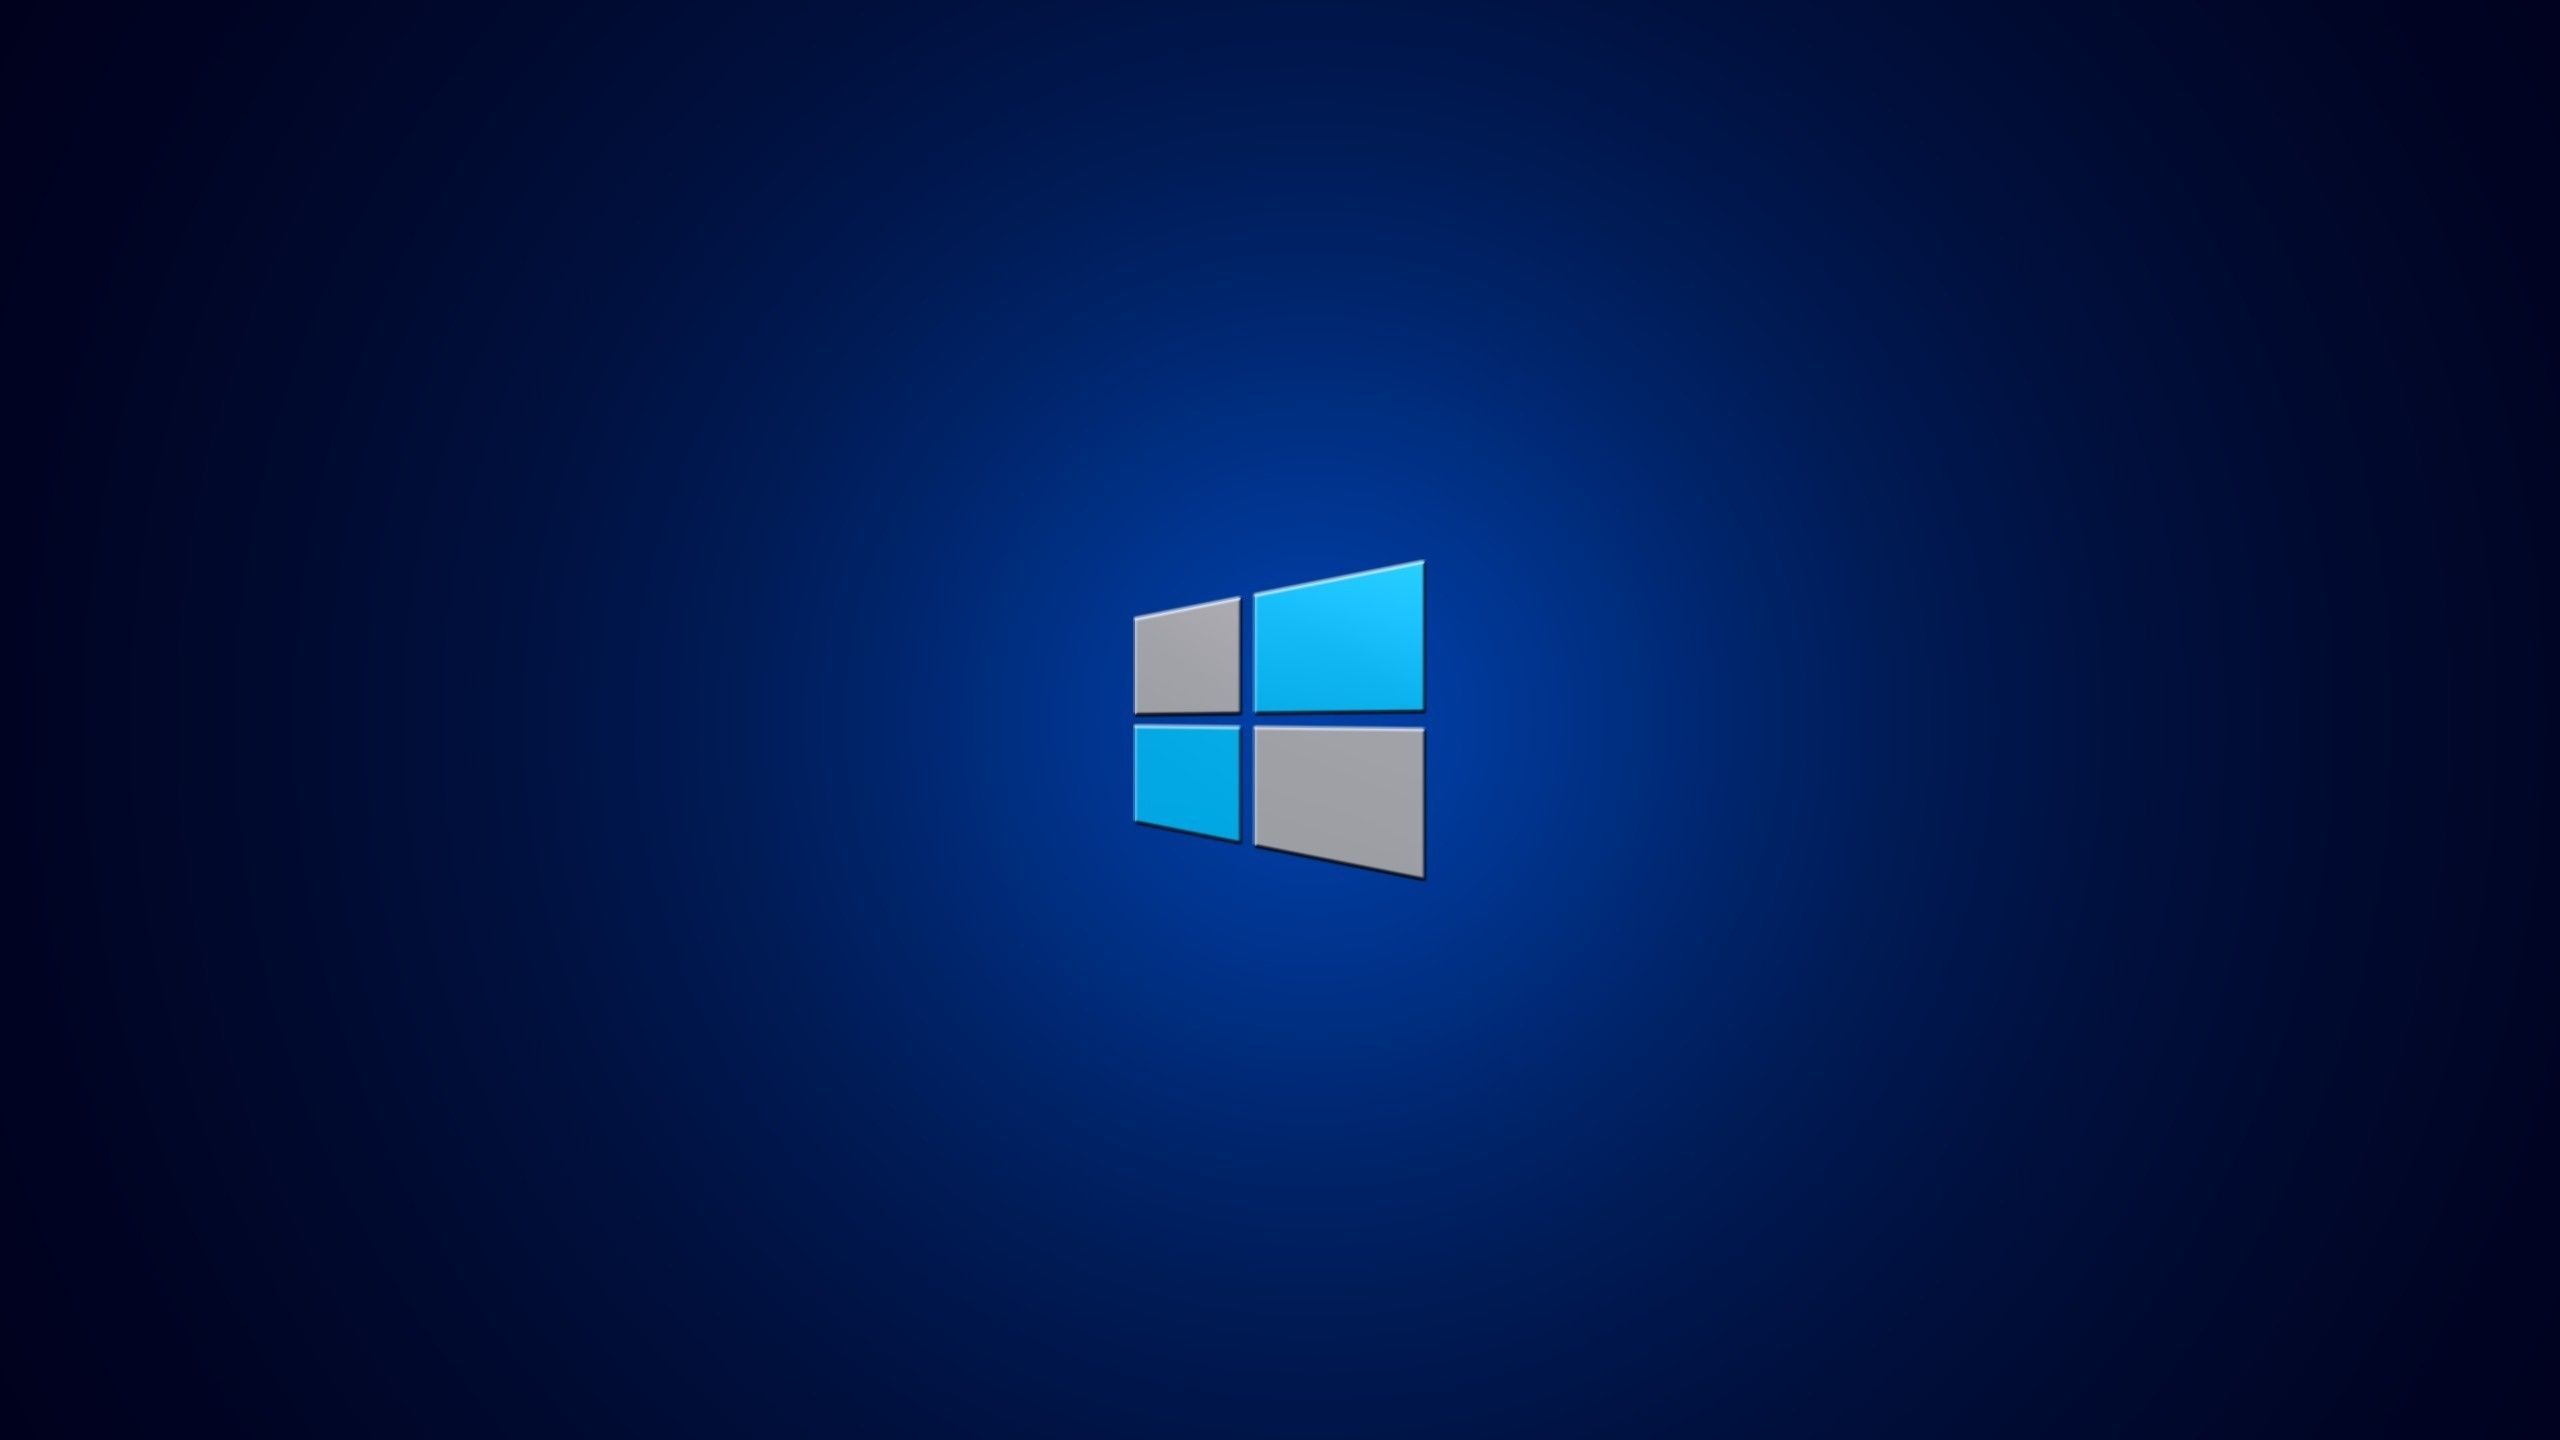 Windows 10 2560 X 1440 Wallpaper Wallpapersafari Windows Wallpaper Hd Wallpapers 1080p Minimalist Wallpaper